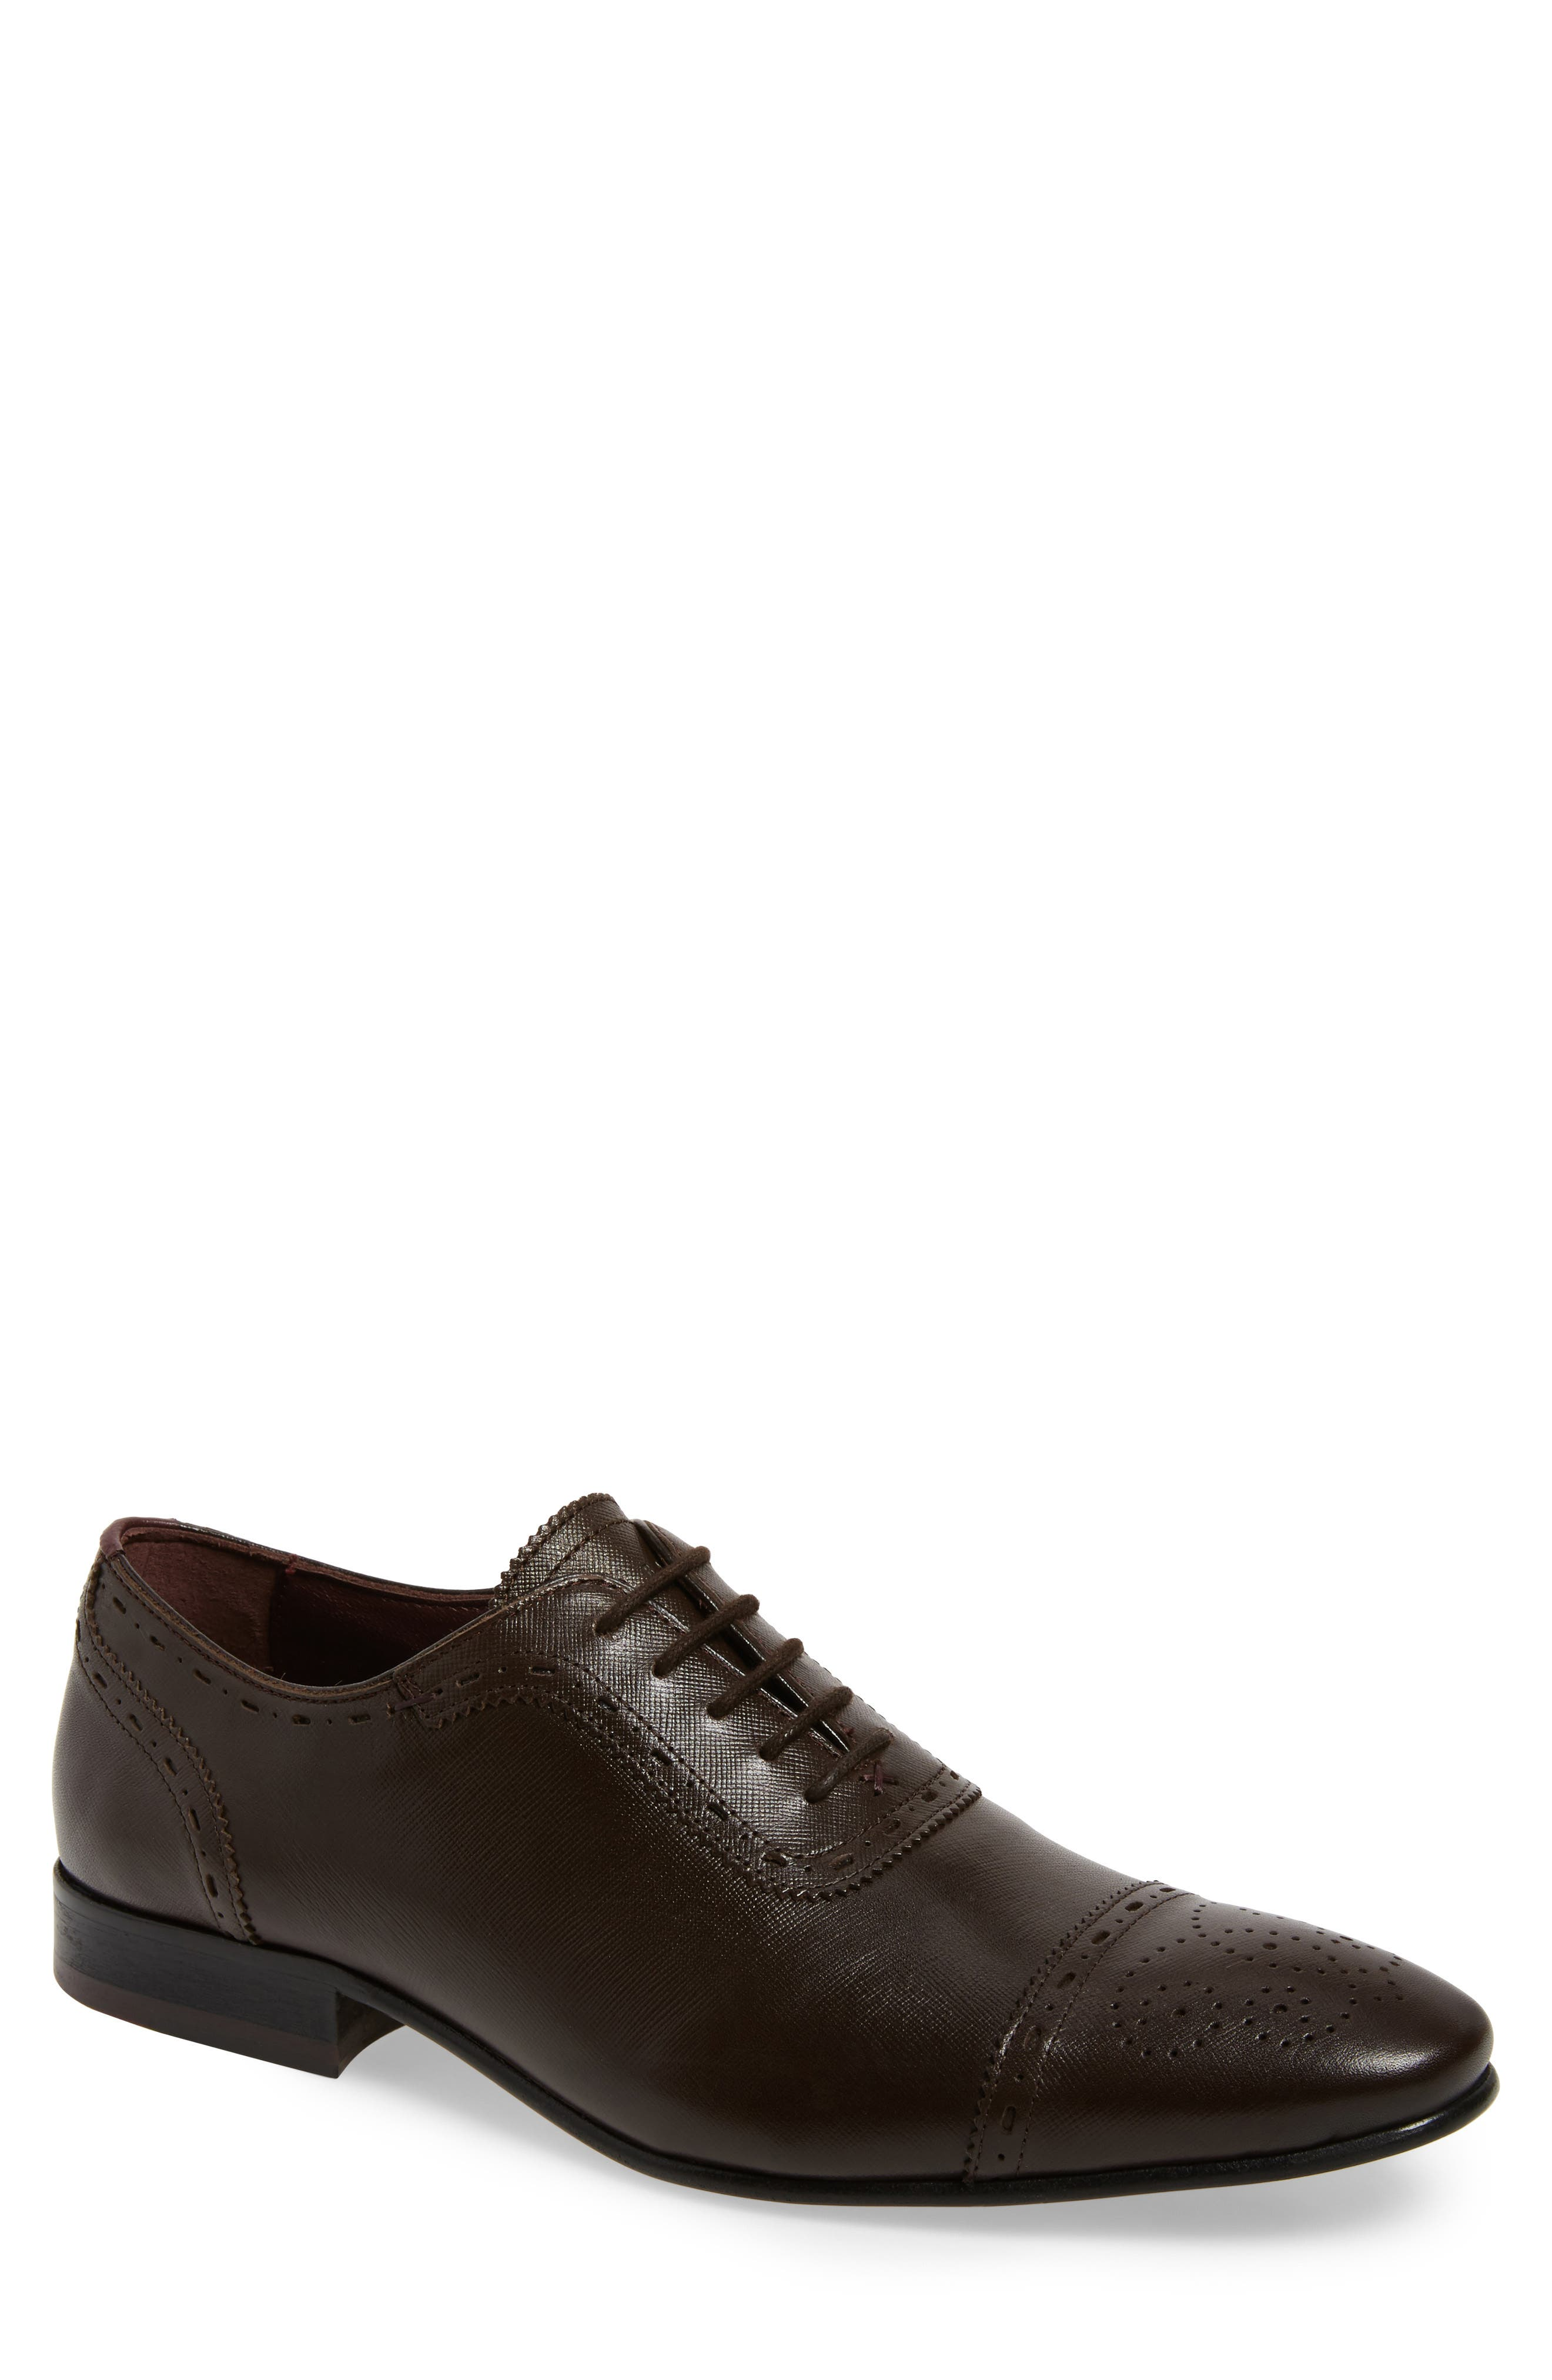 Main Image - Ted Baker London Barliy Cap Toe Oxford (Men)